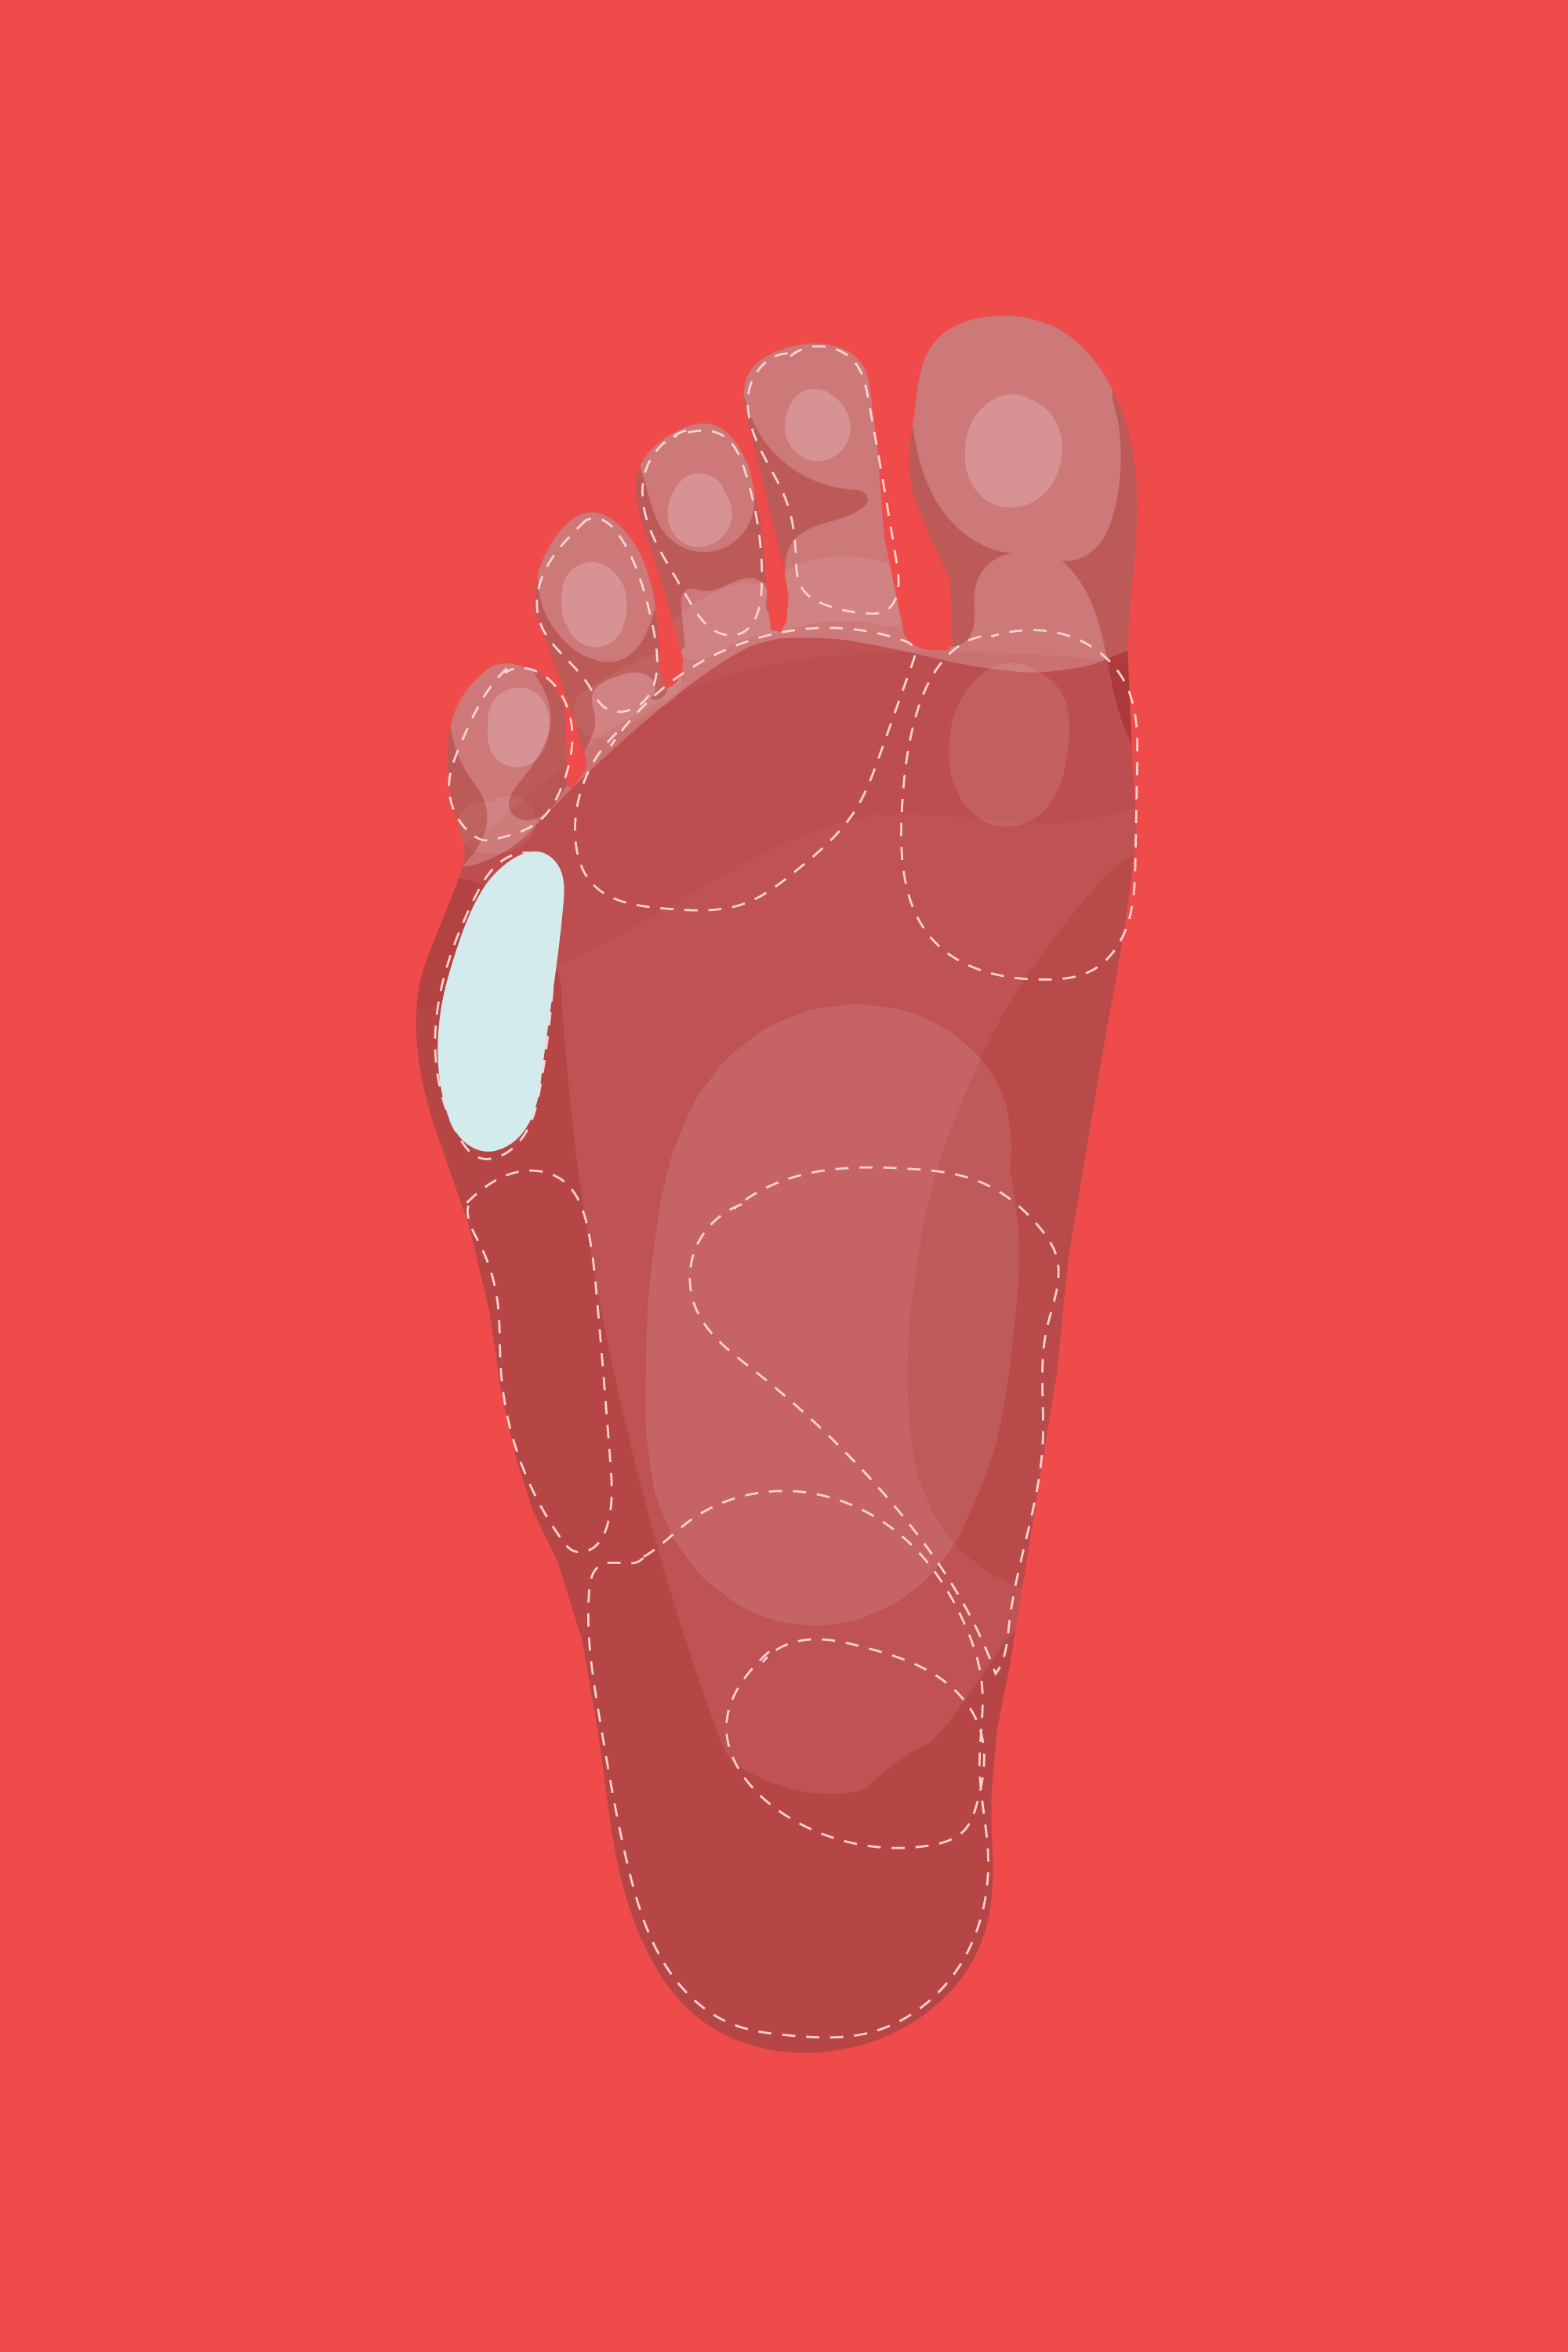 Why Do My Feet Hurt - Foot Pain Relief, Causes